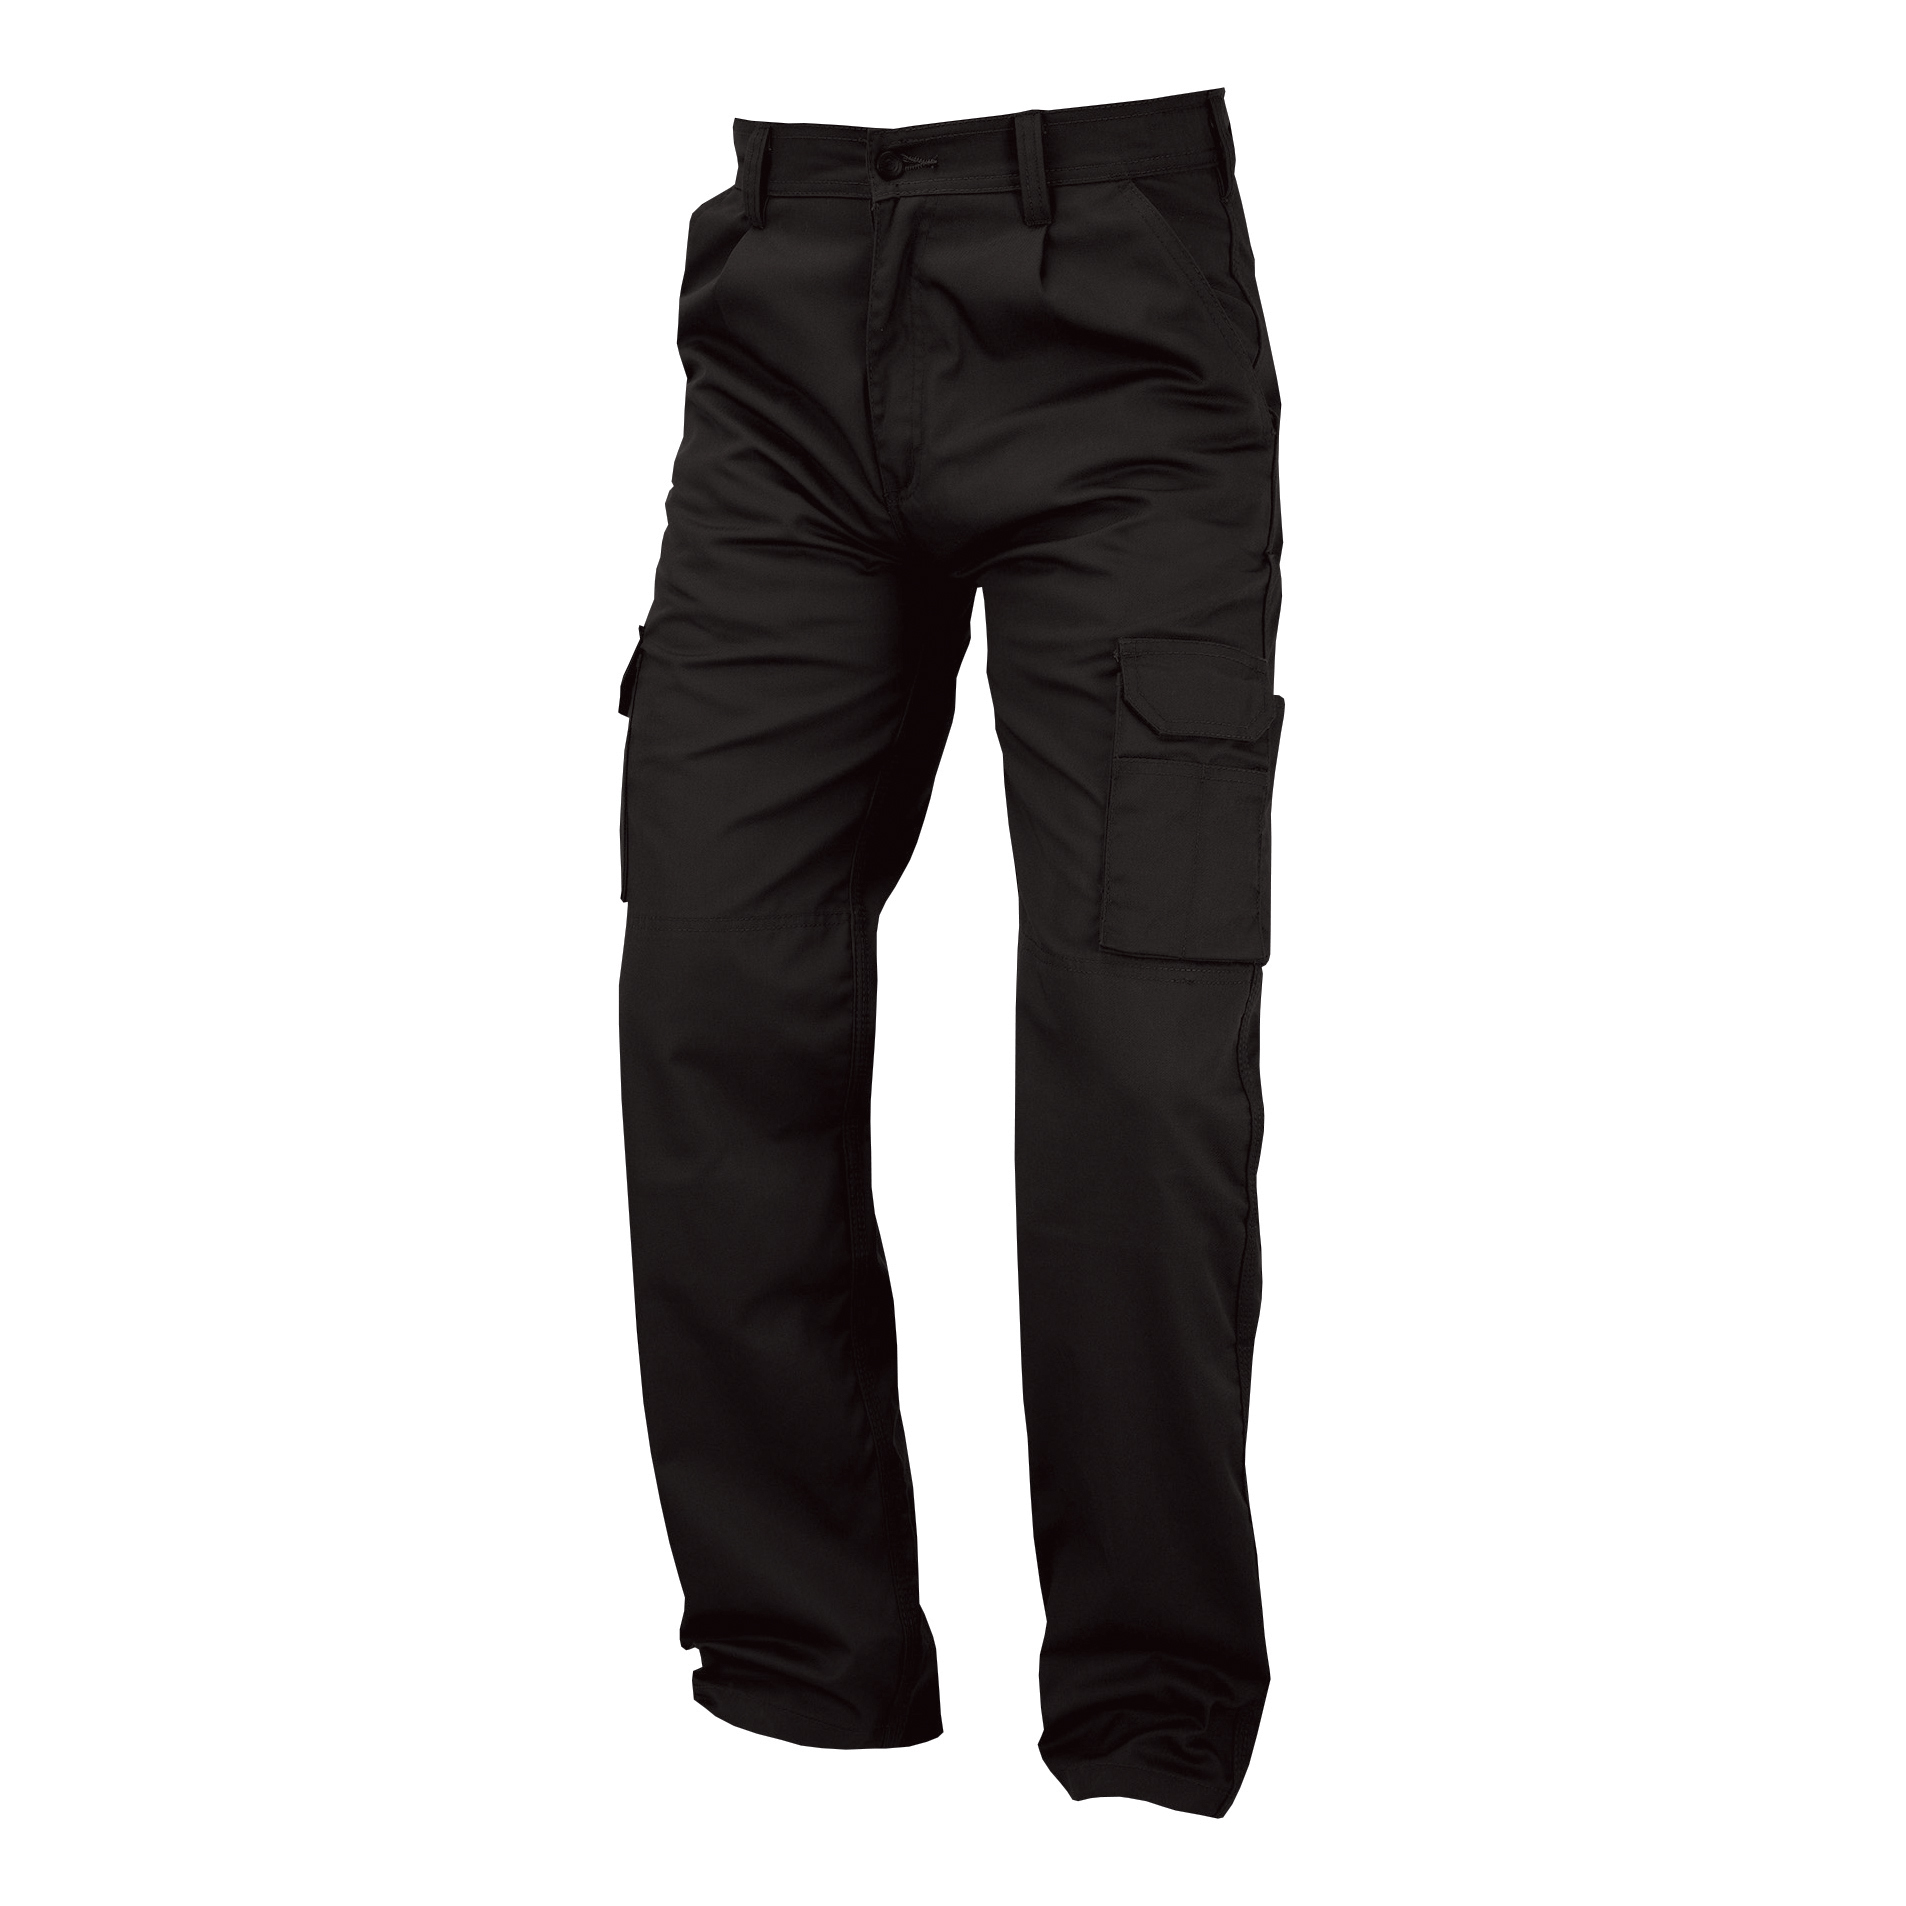 Combat Trousers Polycotton with Pockets Size 30in Long Black Ref PCTHWBL30T *Approx 3 Day Leadtime*